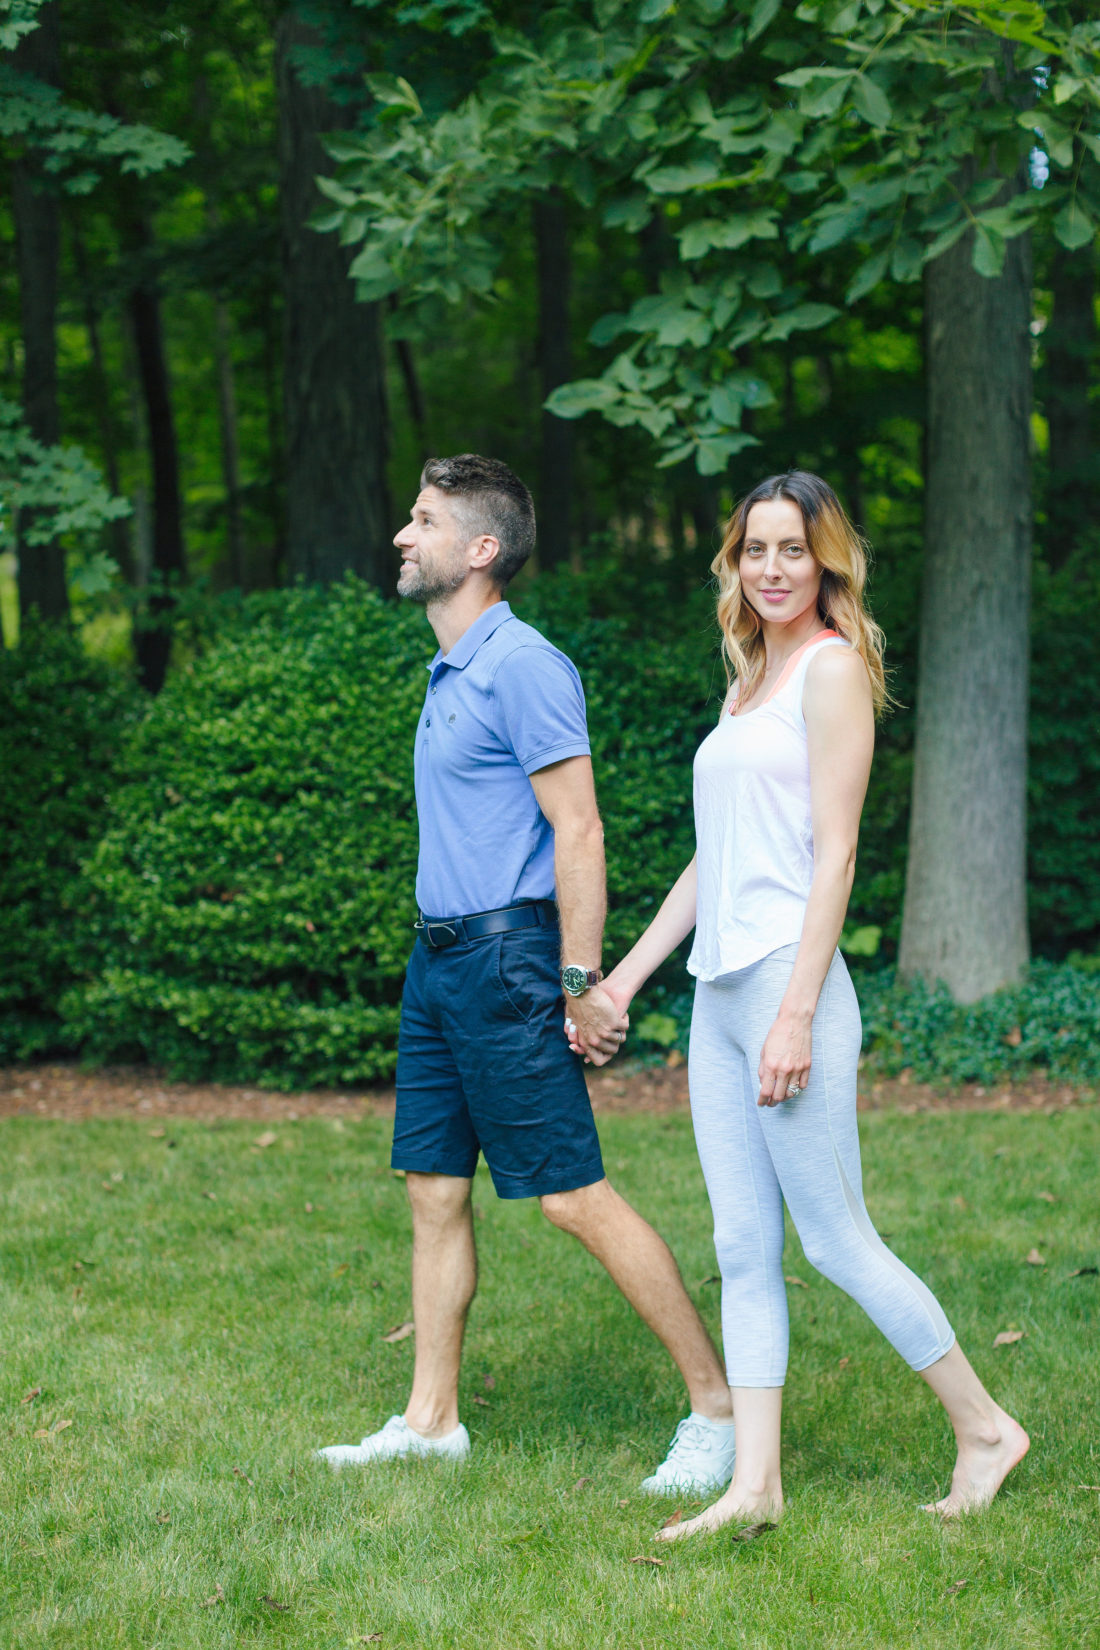 Eva Amurri Martino and Kyle Martino hold hands while wearing active wear, and strolling through the grounds of their Connecticut home